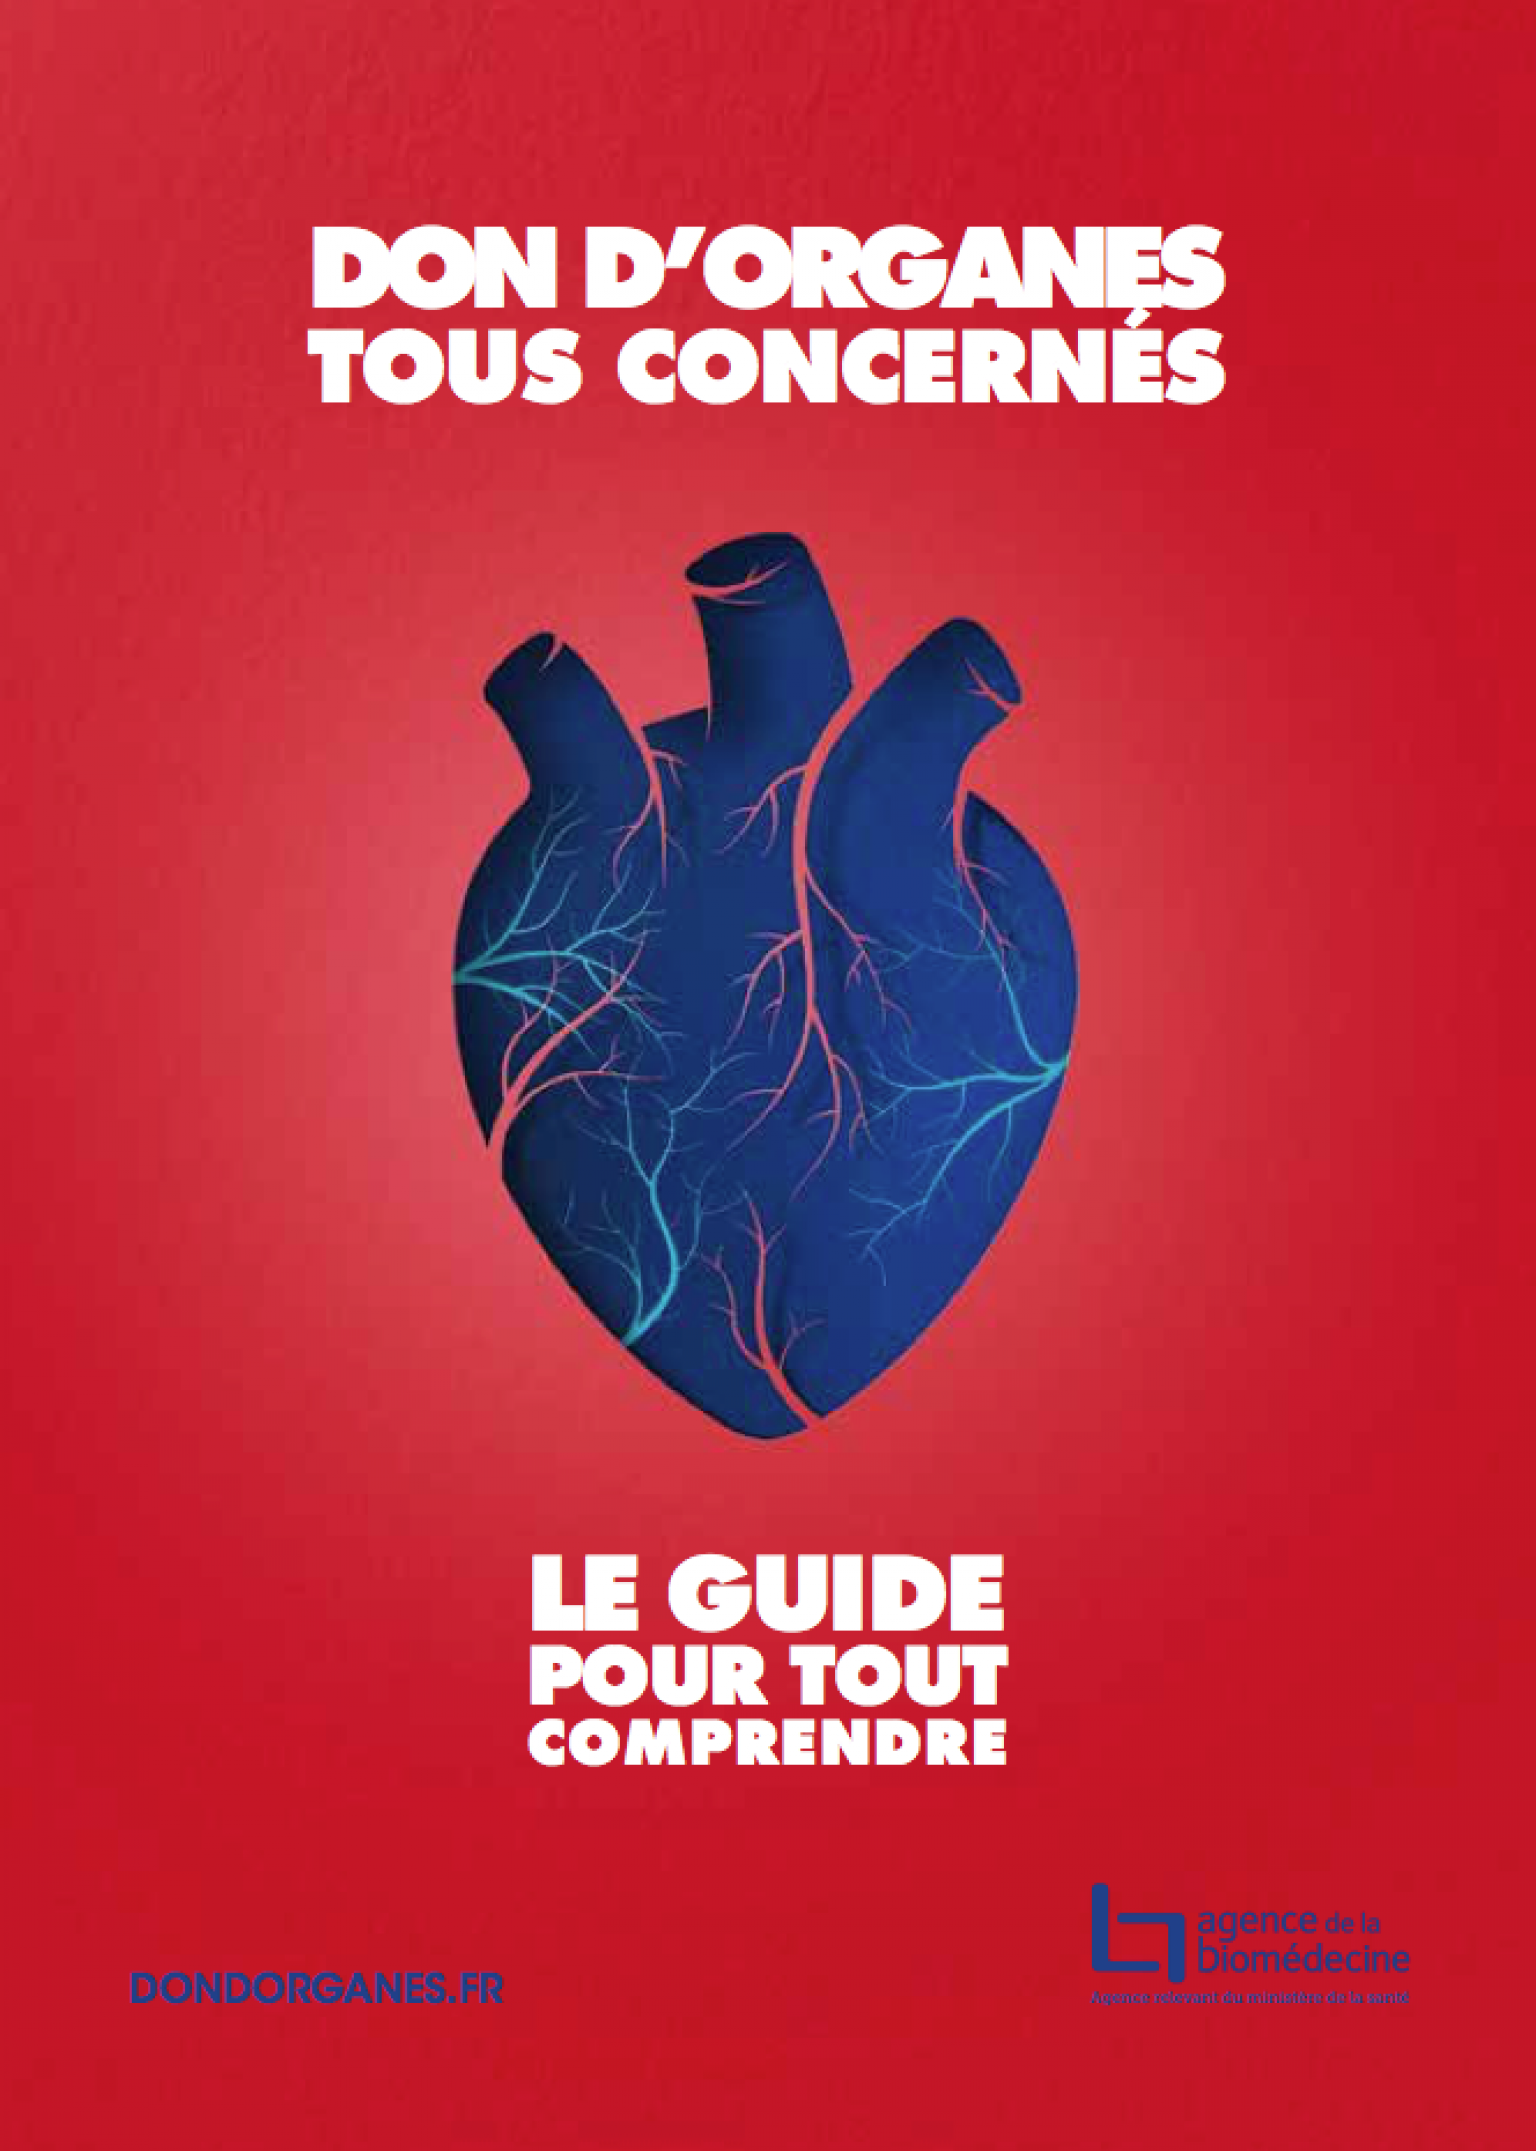 Guide du Don d'organes 2016